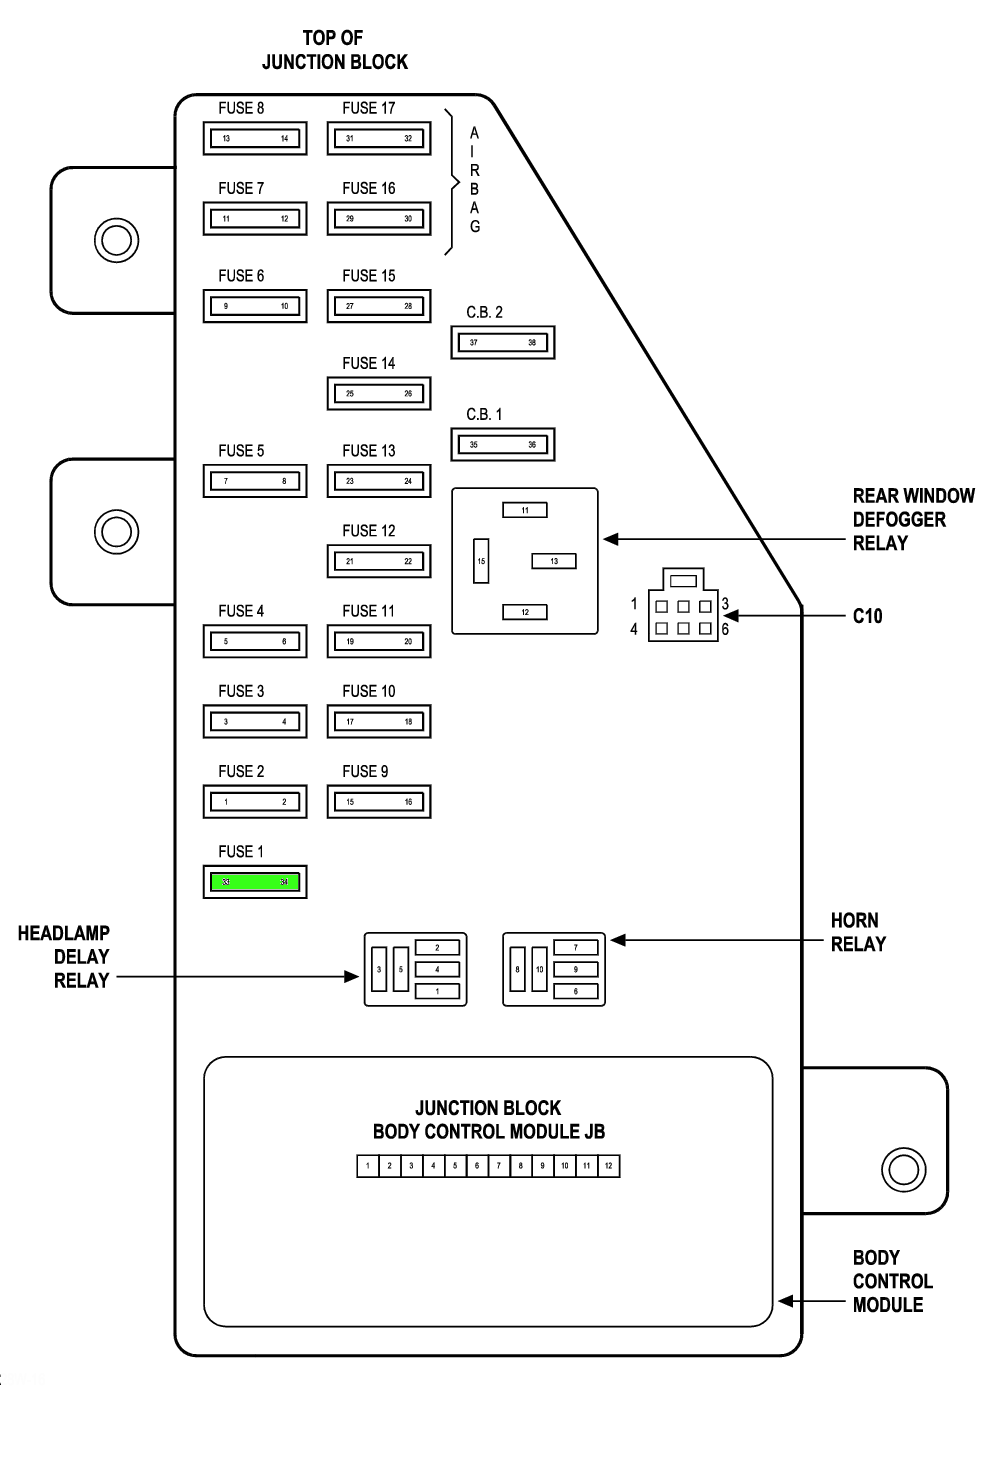 medium resolution of 2007 chrysler pacifica fuse box diagram wiring library 2005 chrysler town country fuse box diagram 2006 chrysler pacifica fuse box diagram